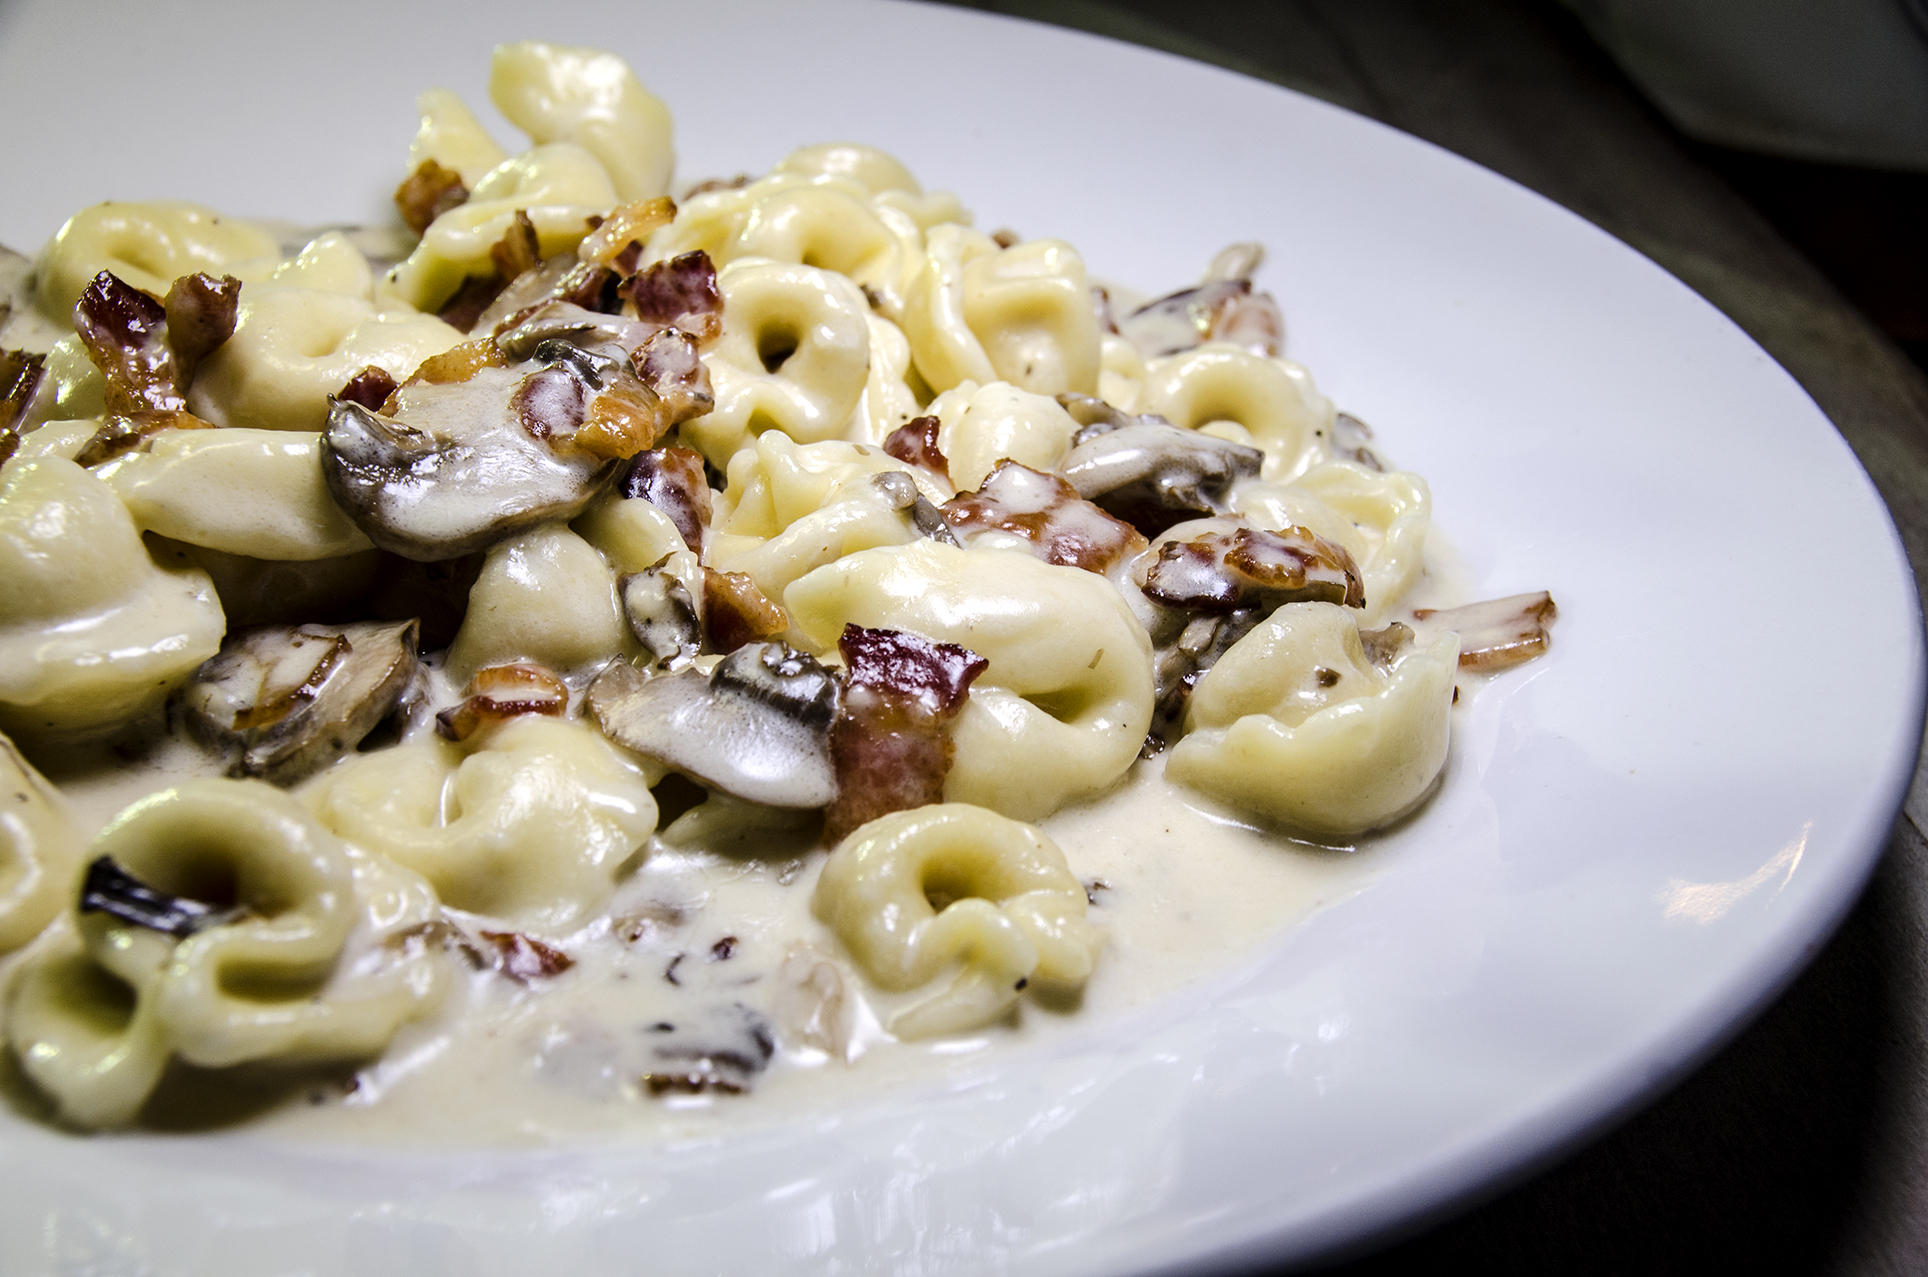 The Alfredo sauce definitely helped add some depth and character to this dish..